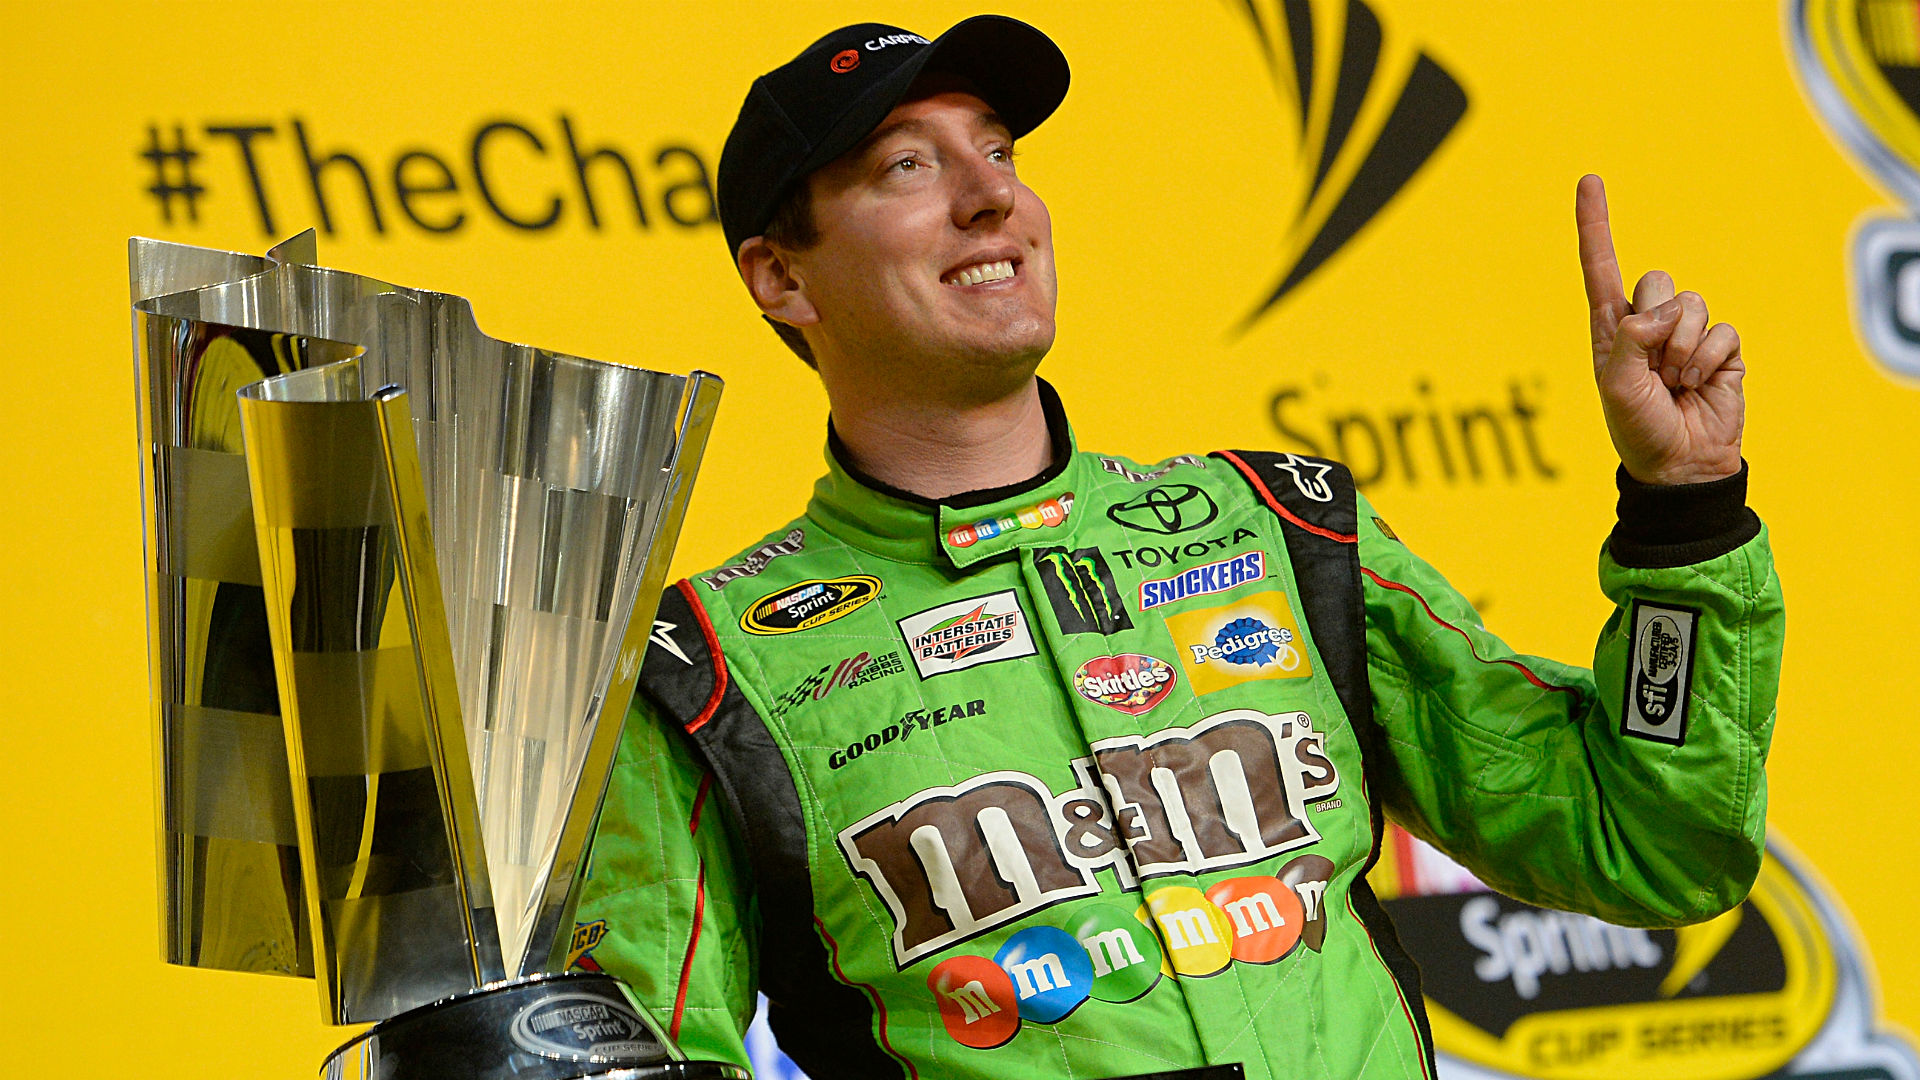 When it comes to car racing and the Nascar awards, Kyle Busch is a popular  name. He is a professional in his field and has made a name for himself.